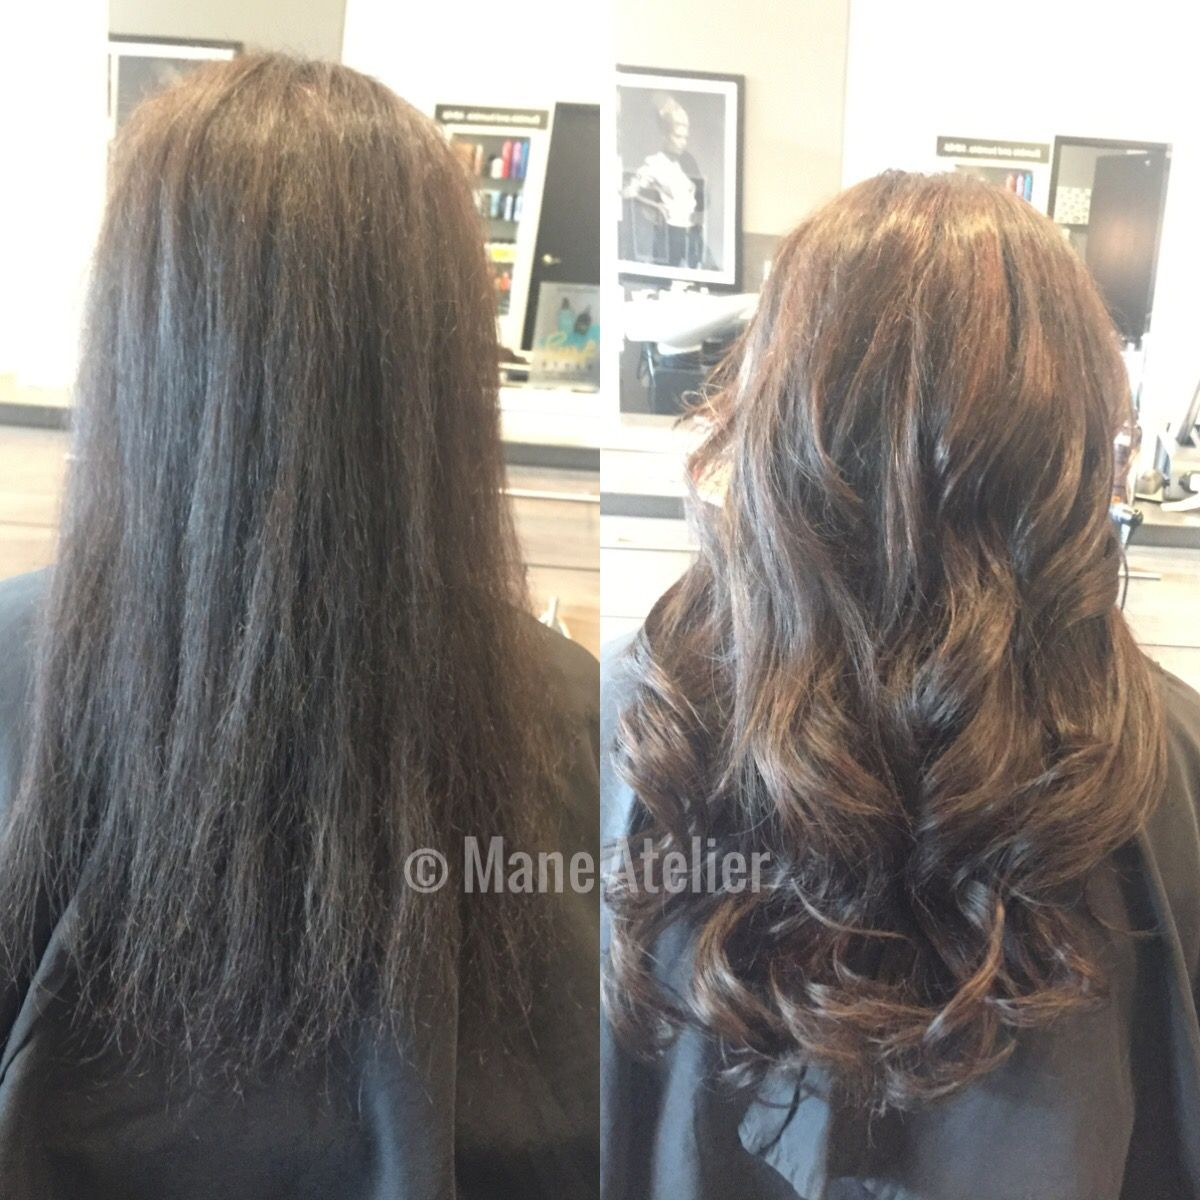 Hairdreams Quikkies Tape In Extensions For Length And Volume Hair